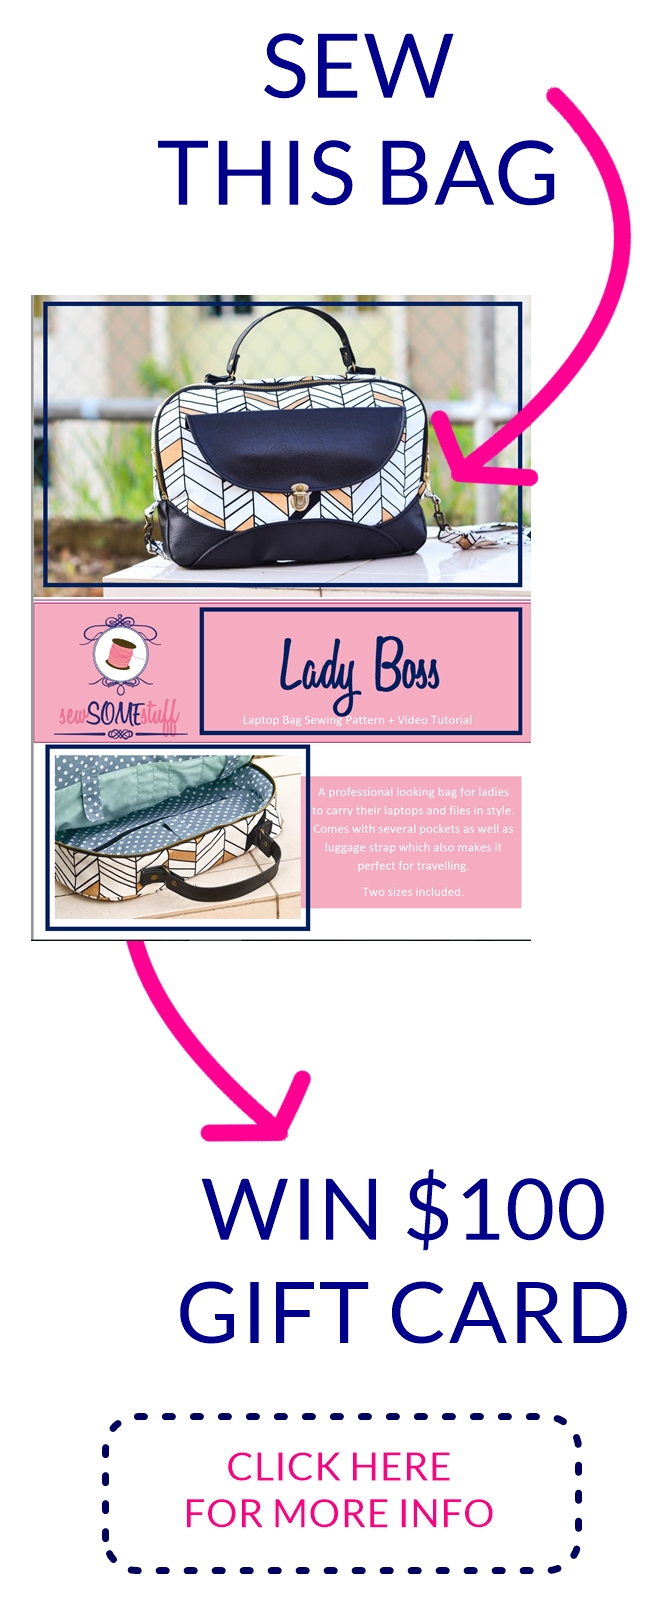 Sew lady boss laptop bag and win $100